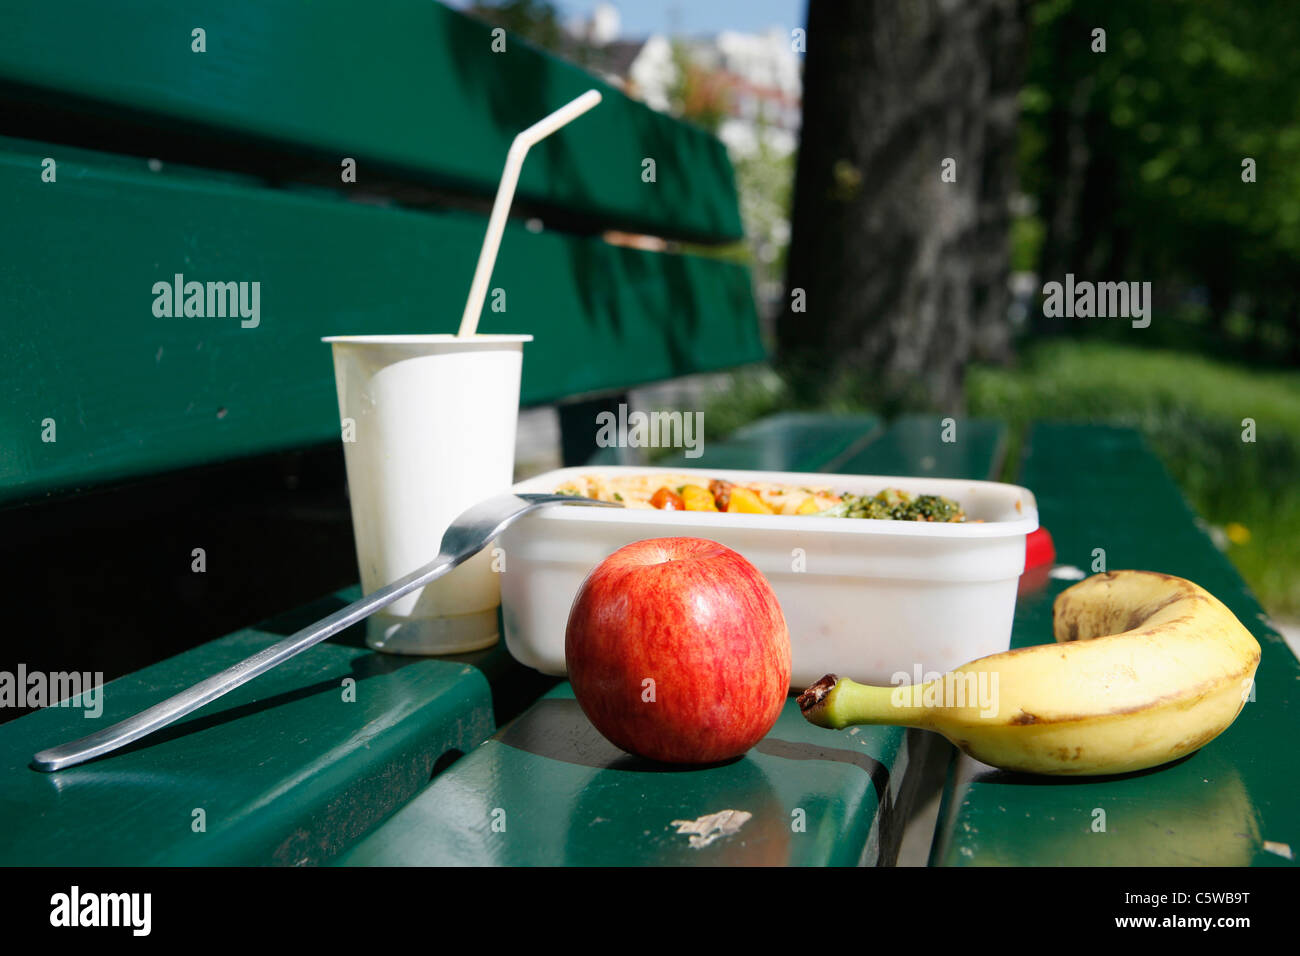 Food on park bench, close-up - Stock Image